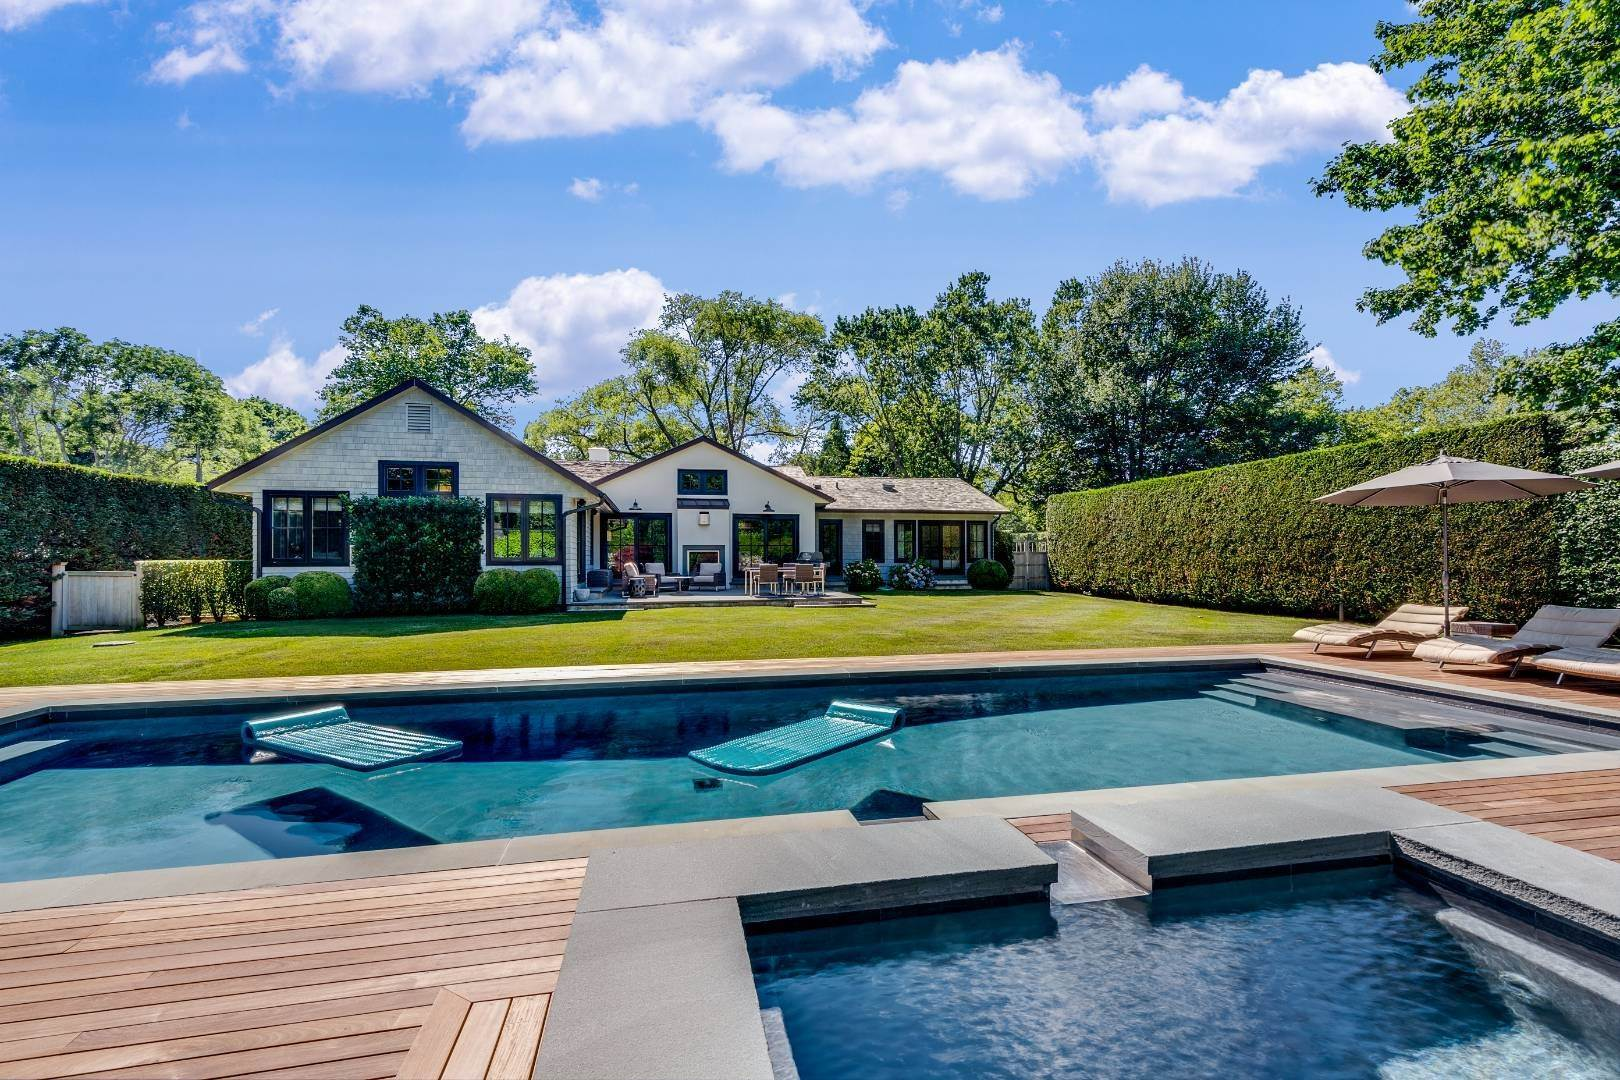 Single Family Home for Sale at Quality Is In The Details 12 Cedar Court, East Hampton, NY 11937